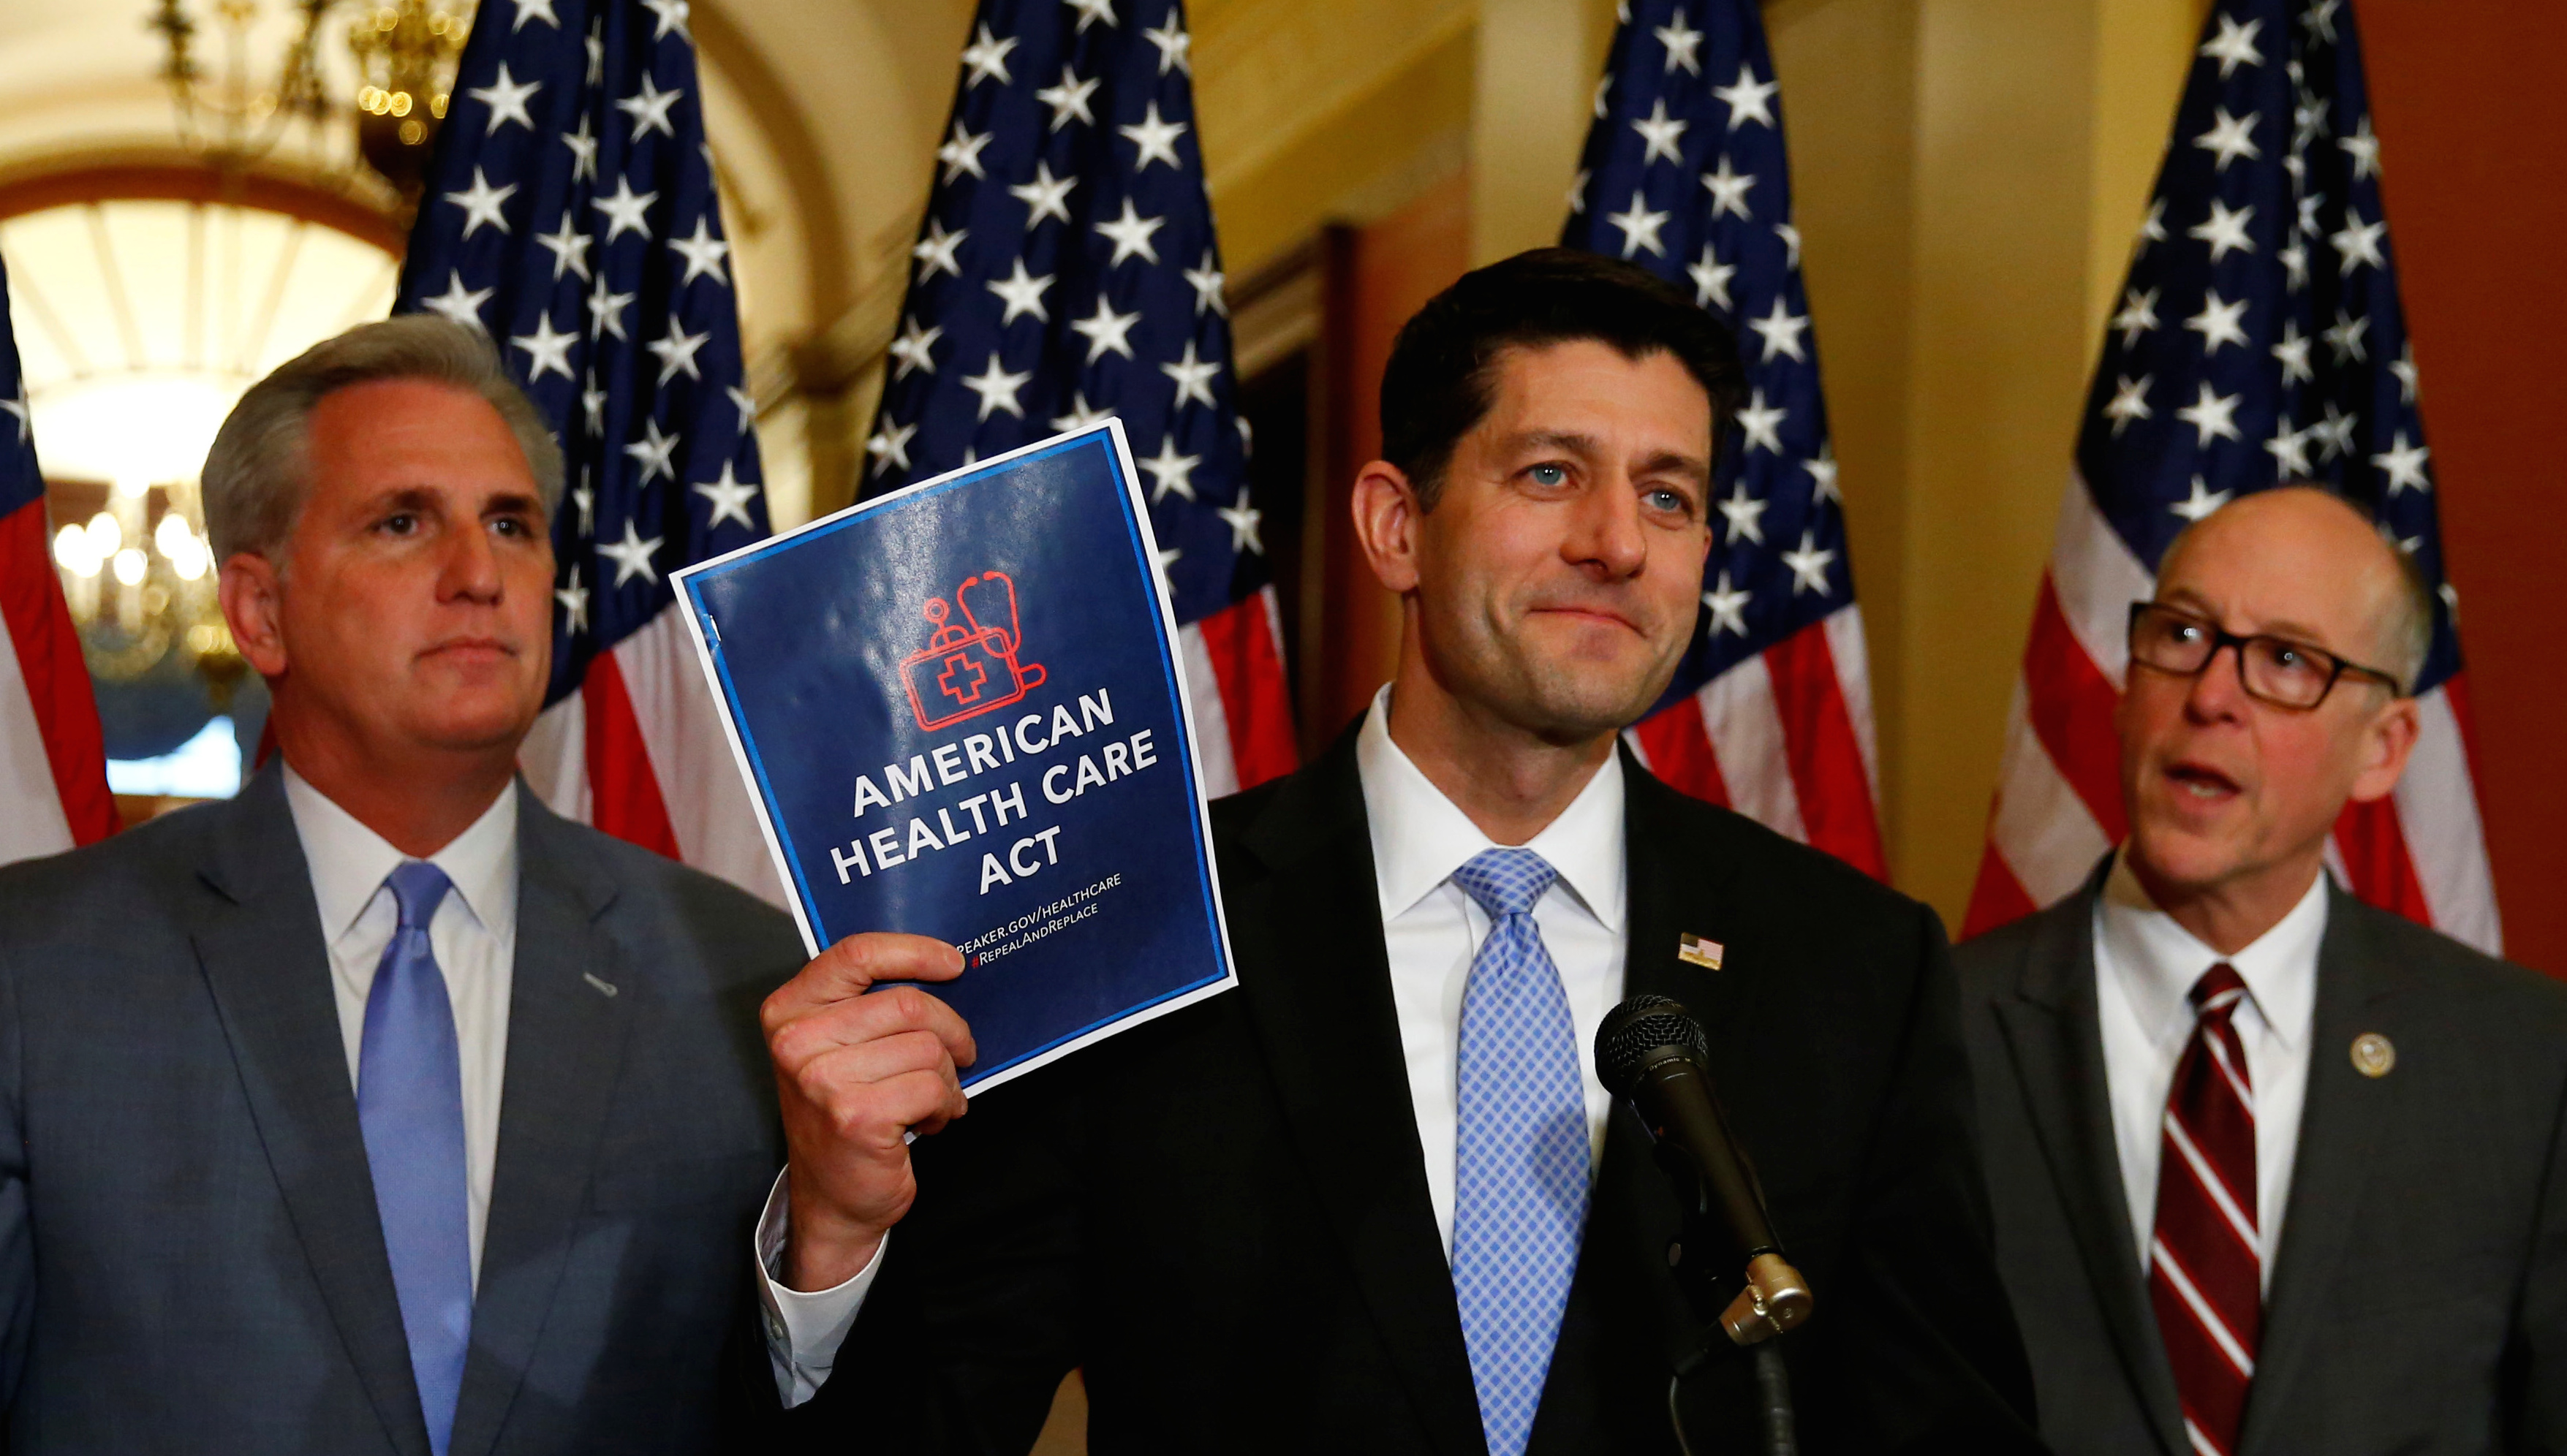 (L-R)U.S. House Majority Leader Kevin McCarthy, U.S. House Speaker Paul Ryan, and  U.S. Representative Greg Walden hold a news conference on the American Health Care Act on Capitol Hill in Washington, U.S. March 7, 2017.